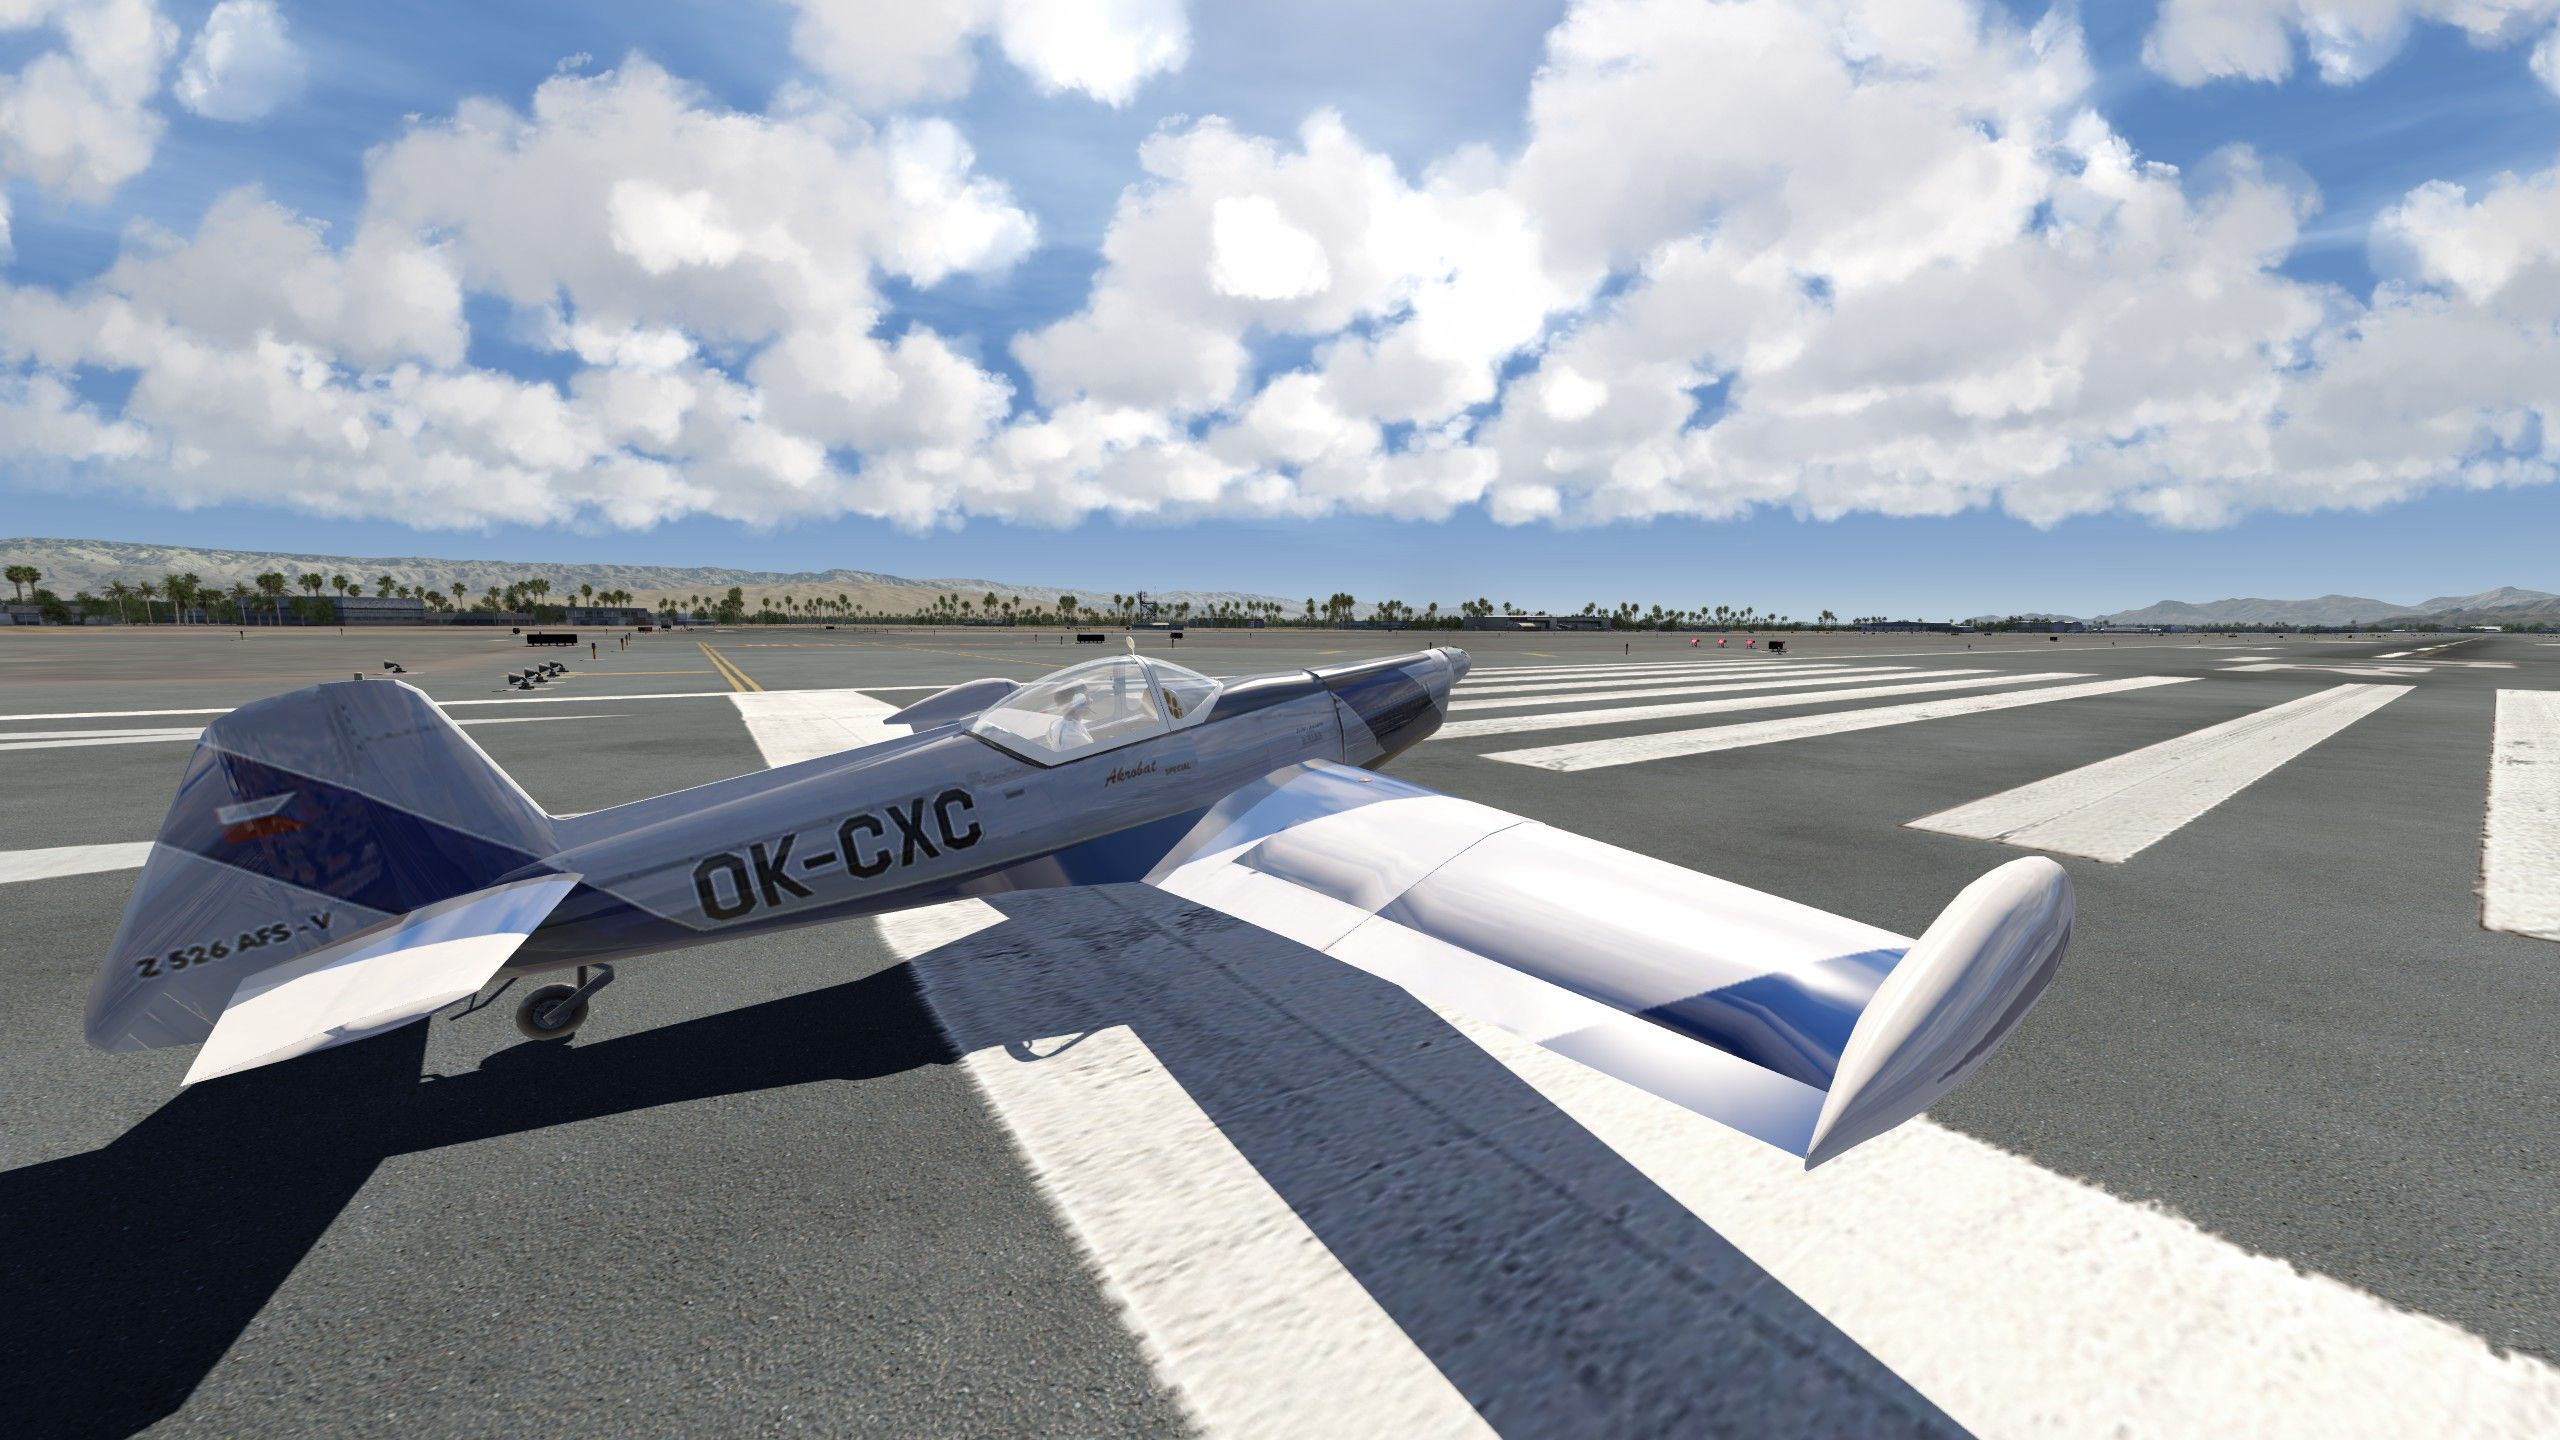 HiFlyer's Content - Orbx Community and Support Forums